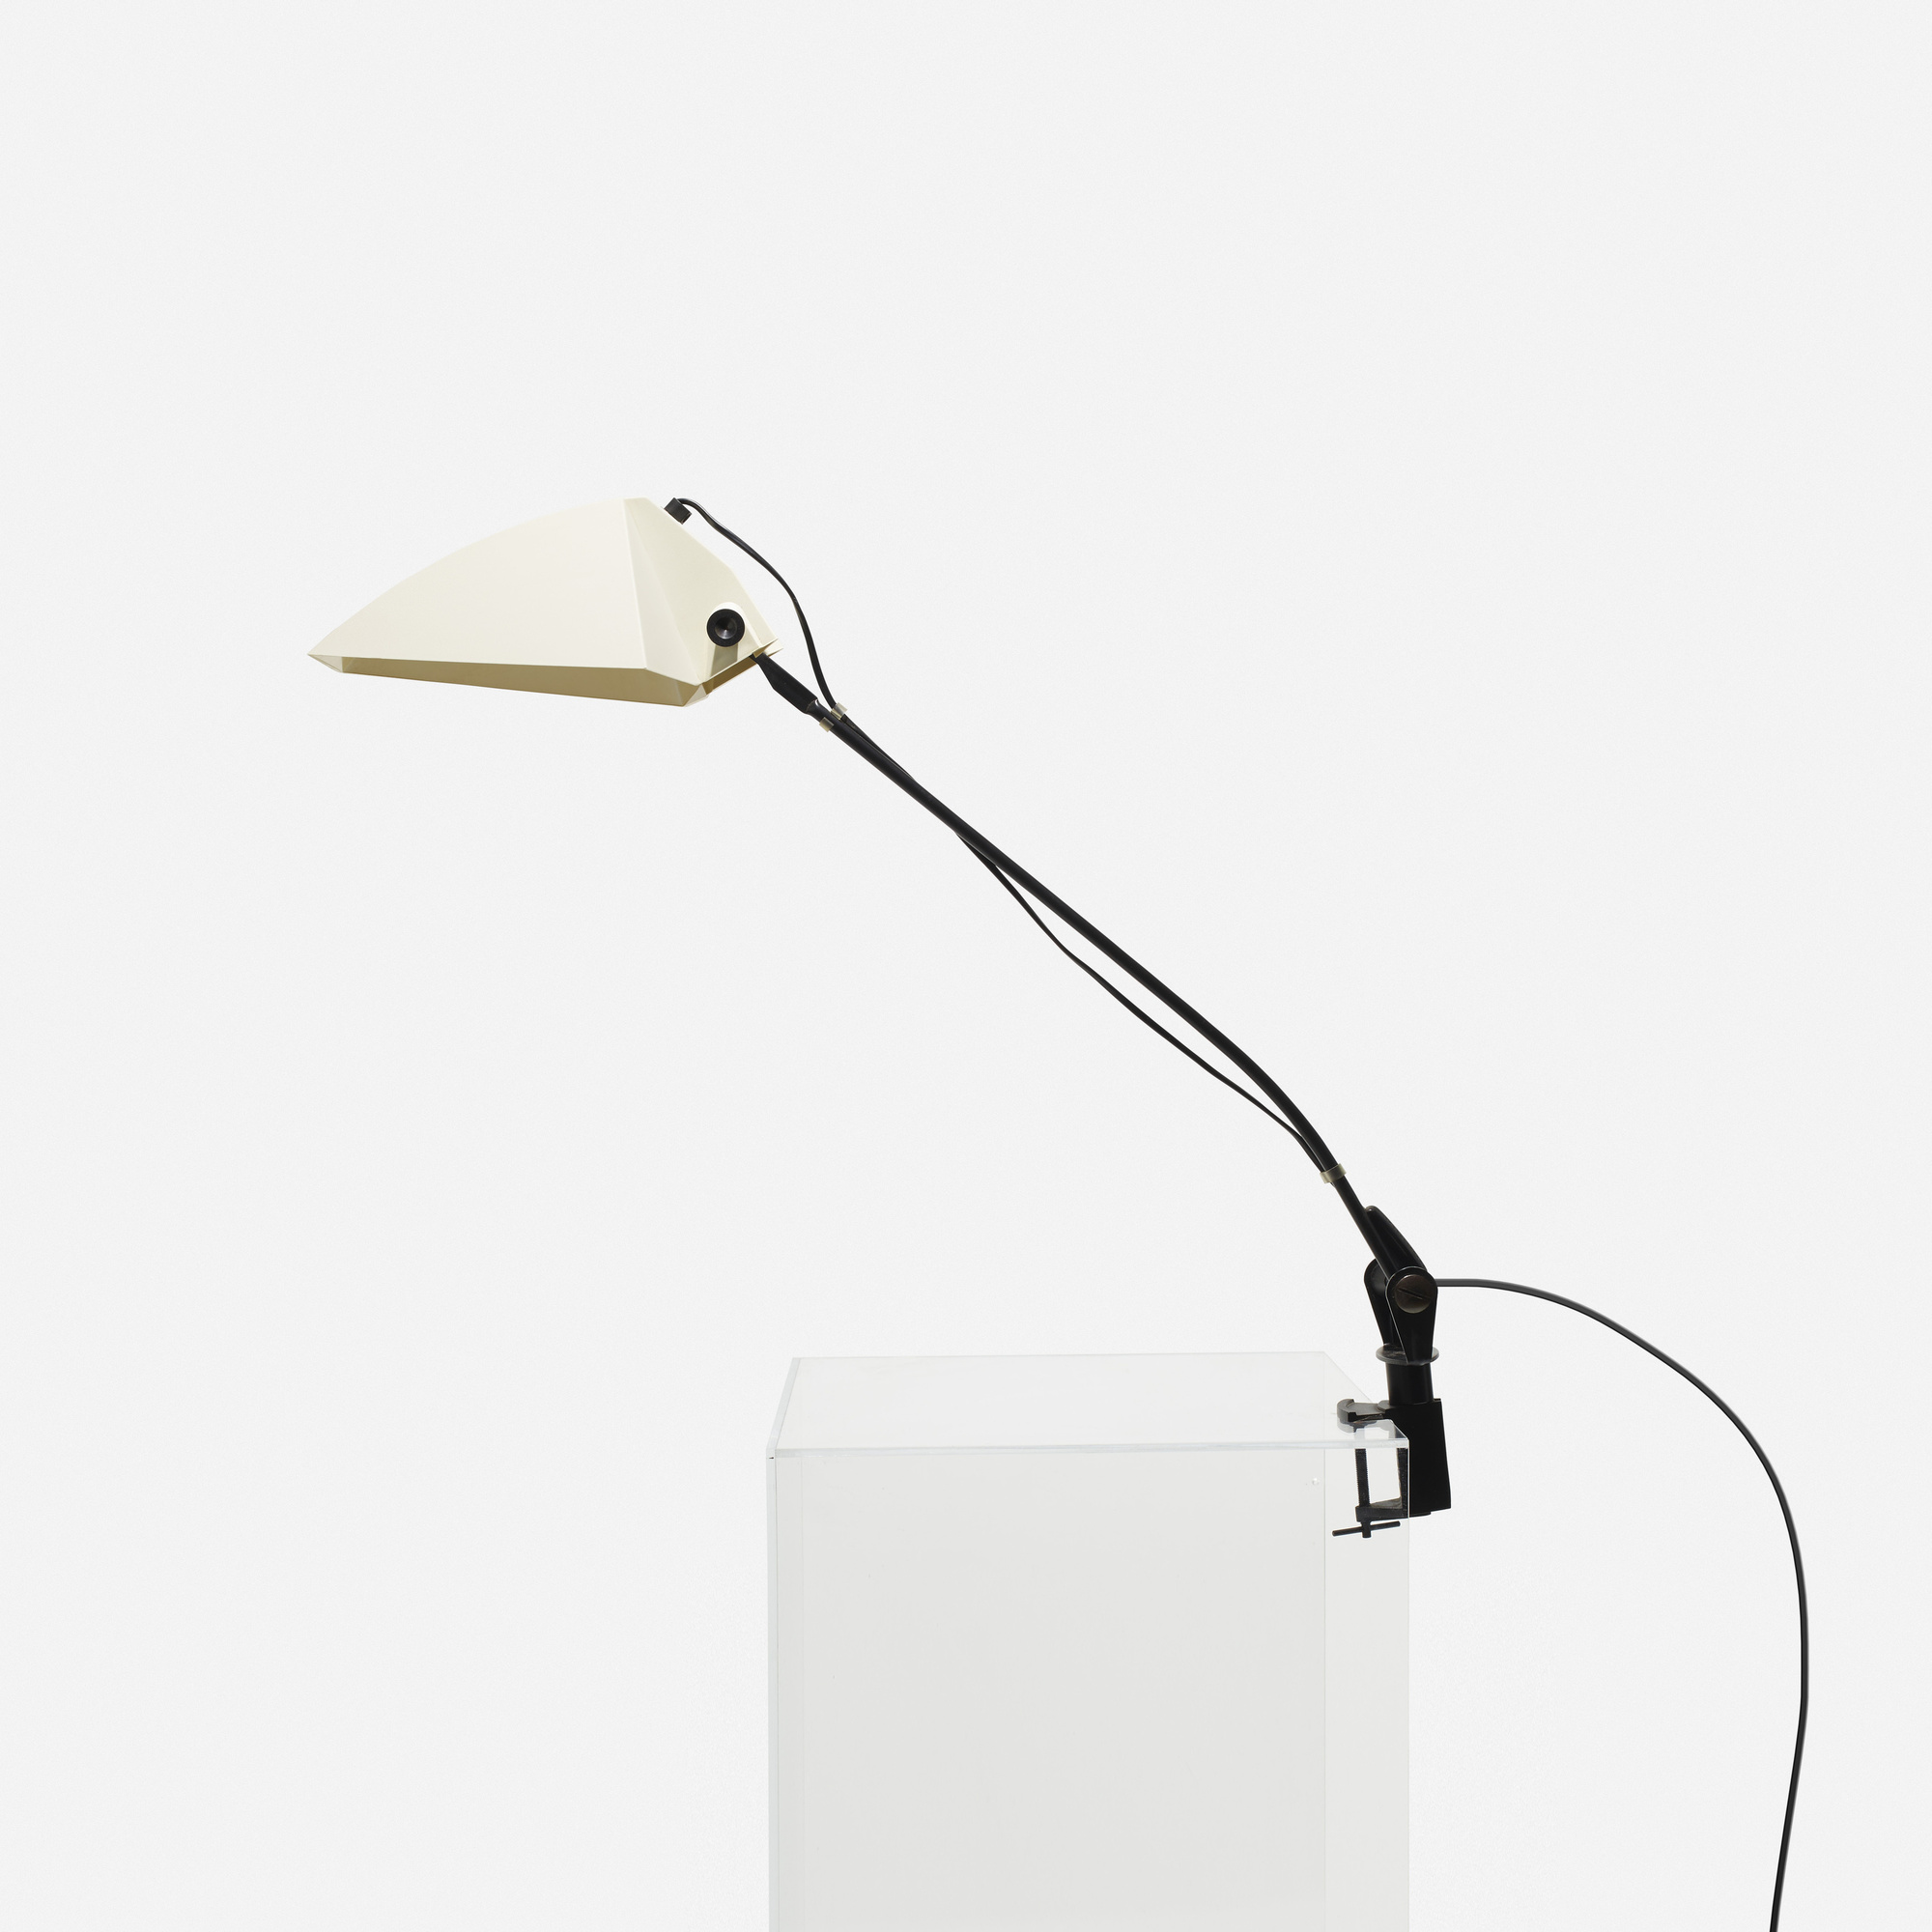 384: Umberto Riva / Dilem E63 vise lamp (1 of 1)